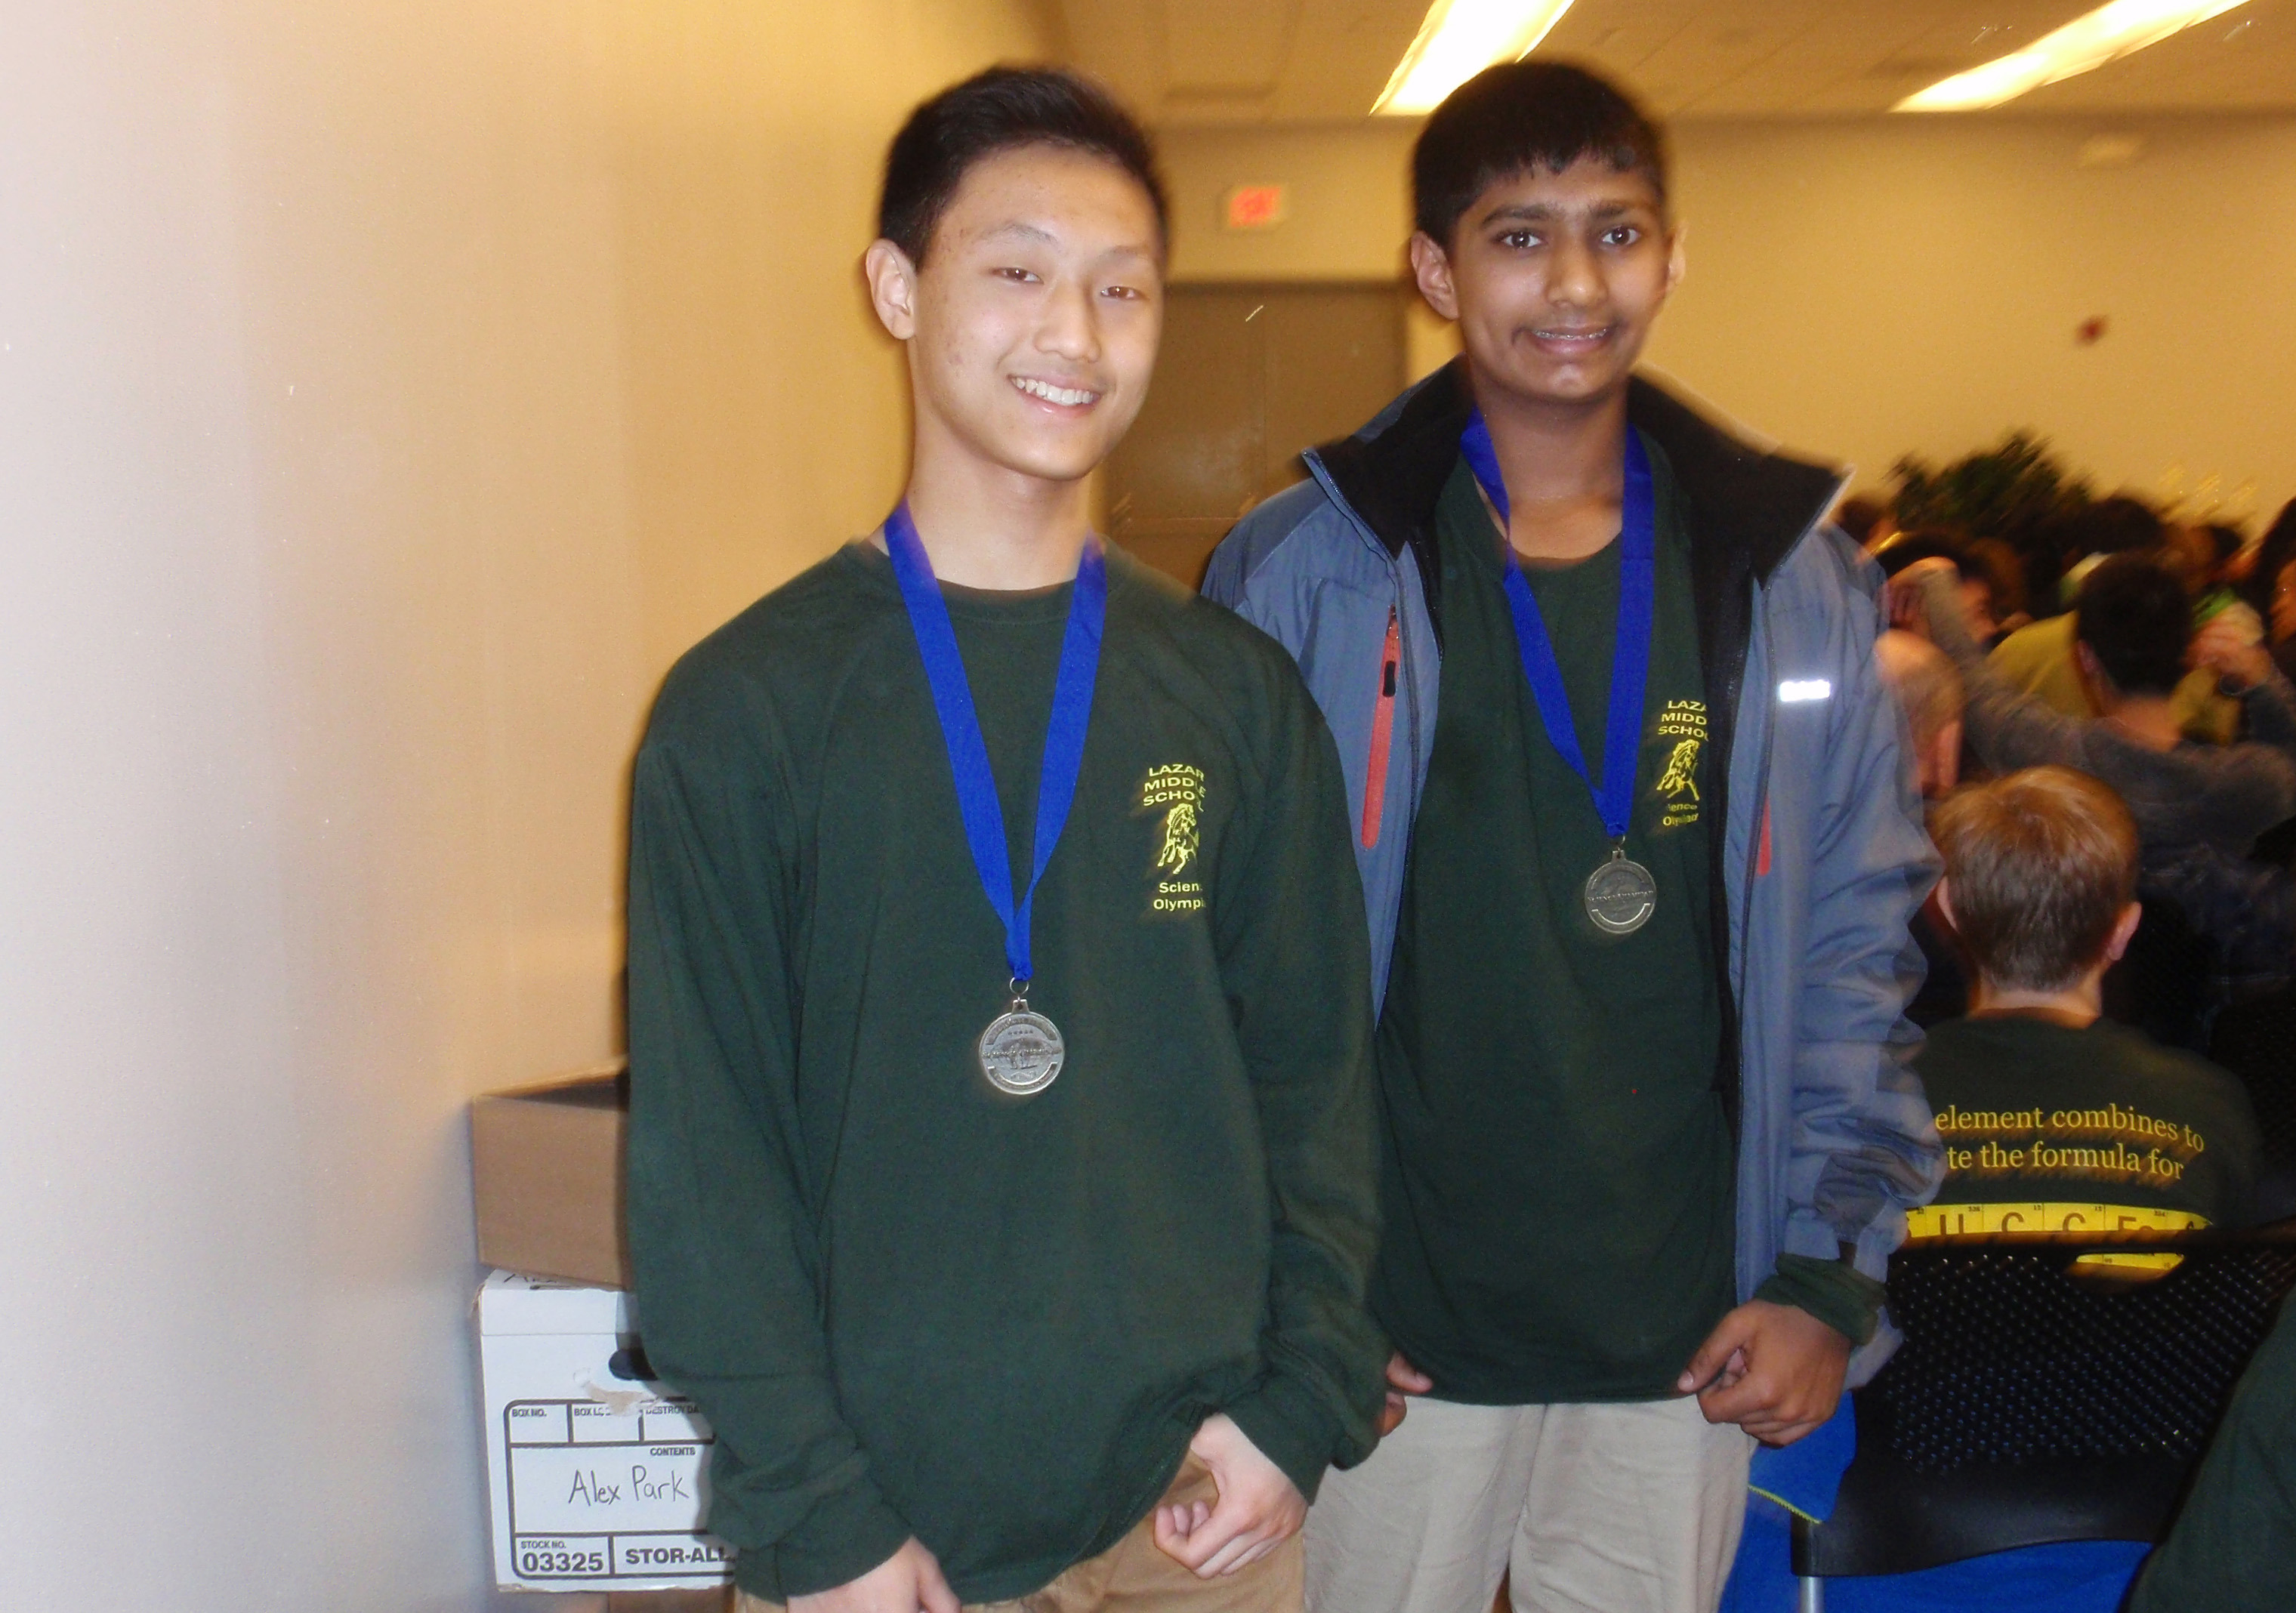 Lazar Invited to State Science Olympiad - Montville NJ News - TAPinto